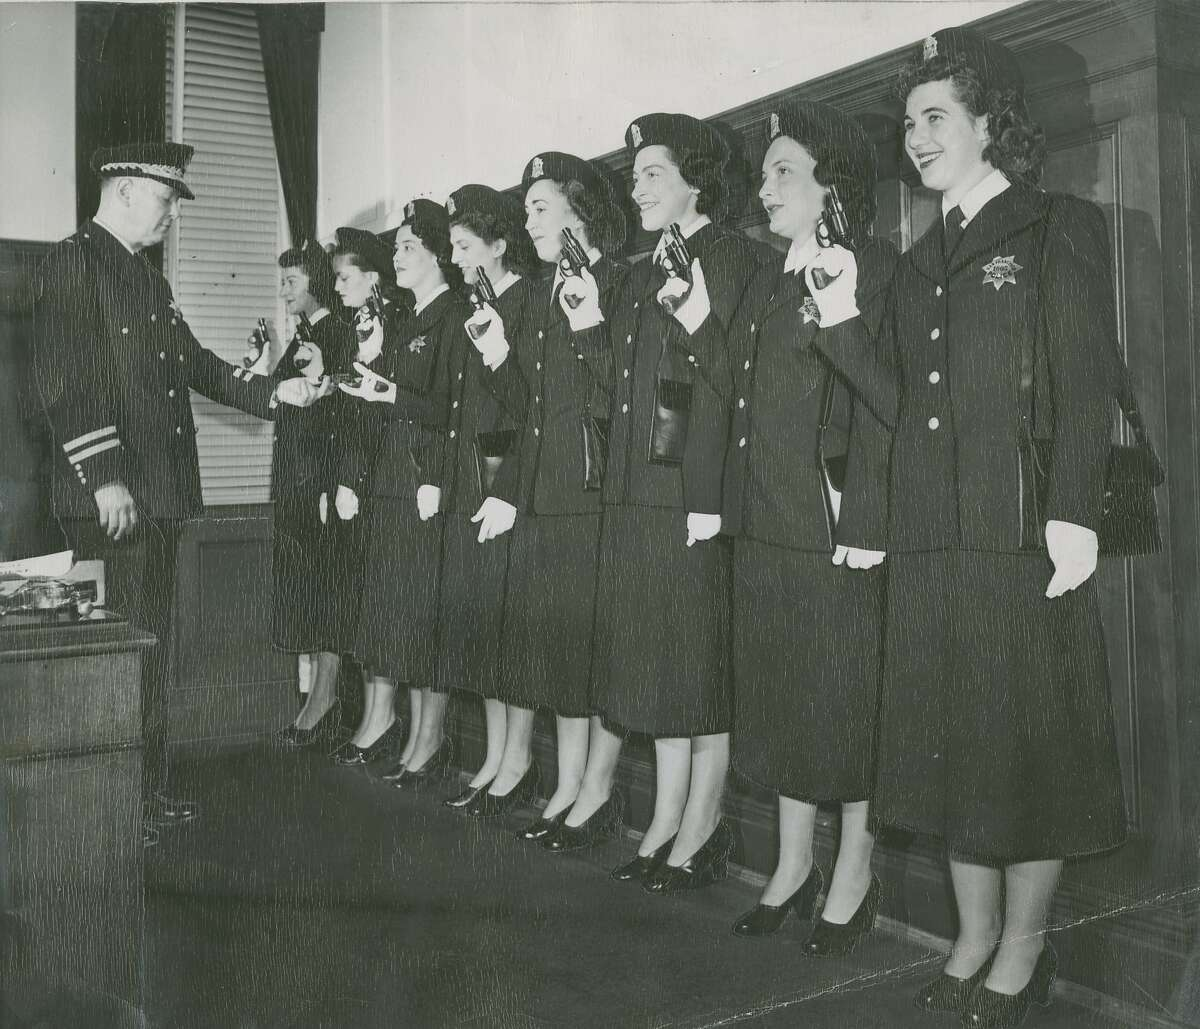 Click ahead to see more historic photos of SFPD officers.